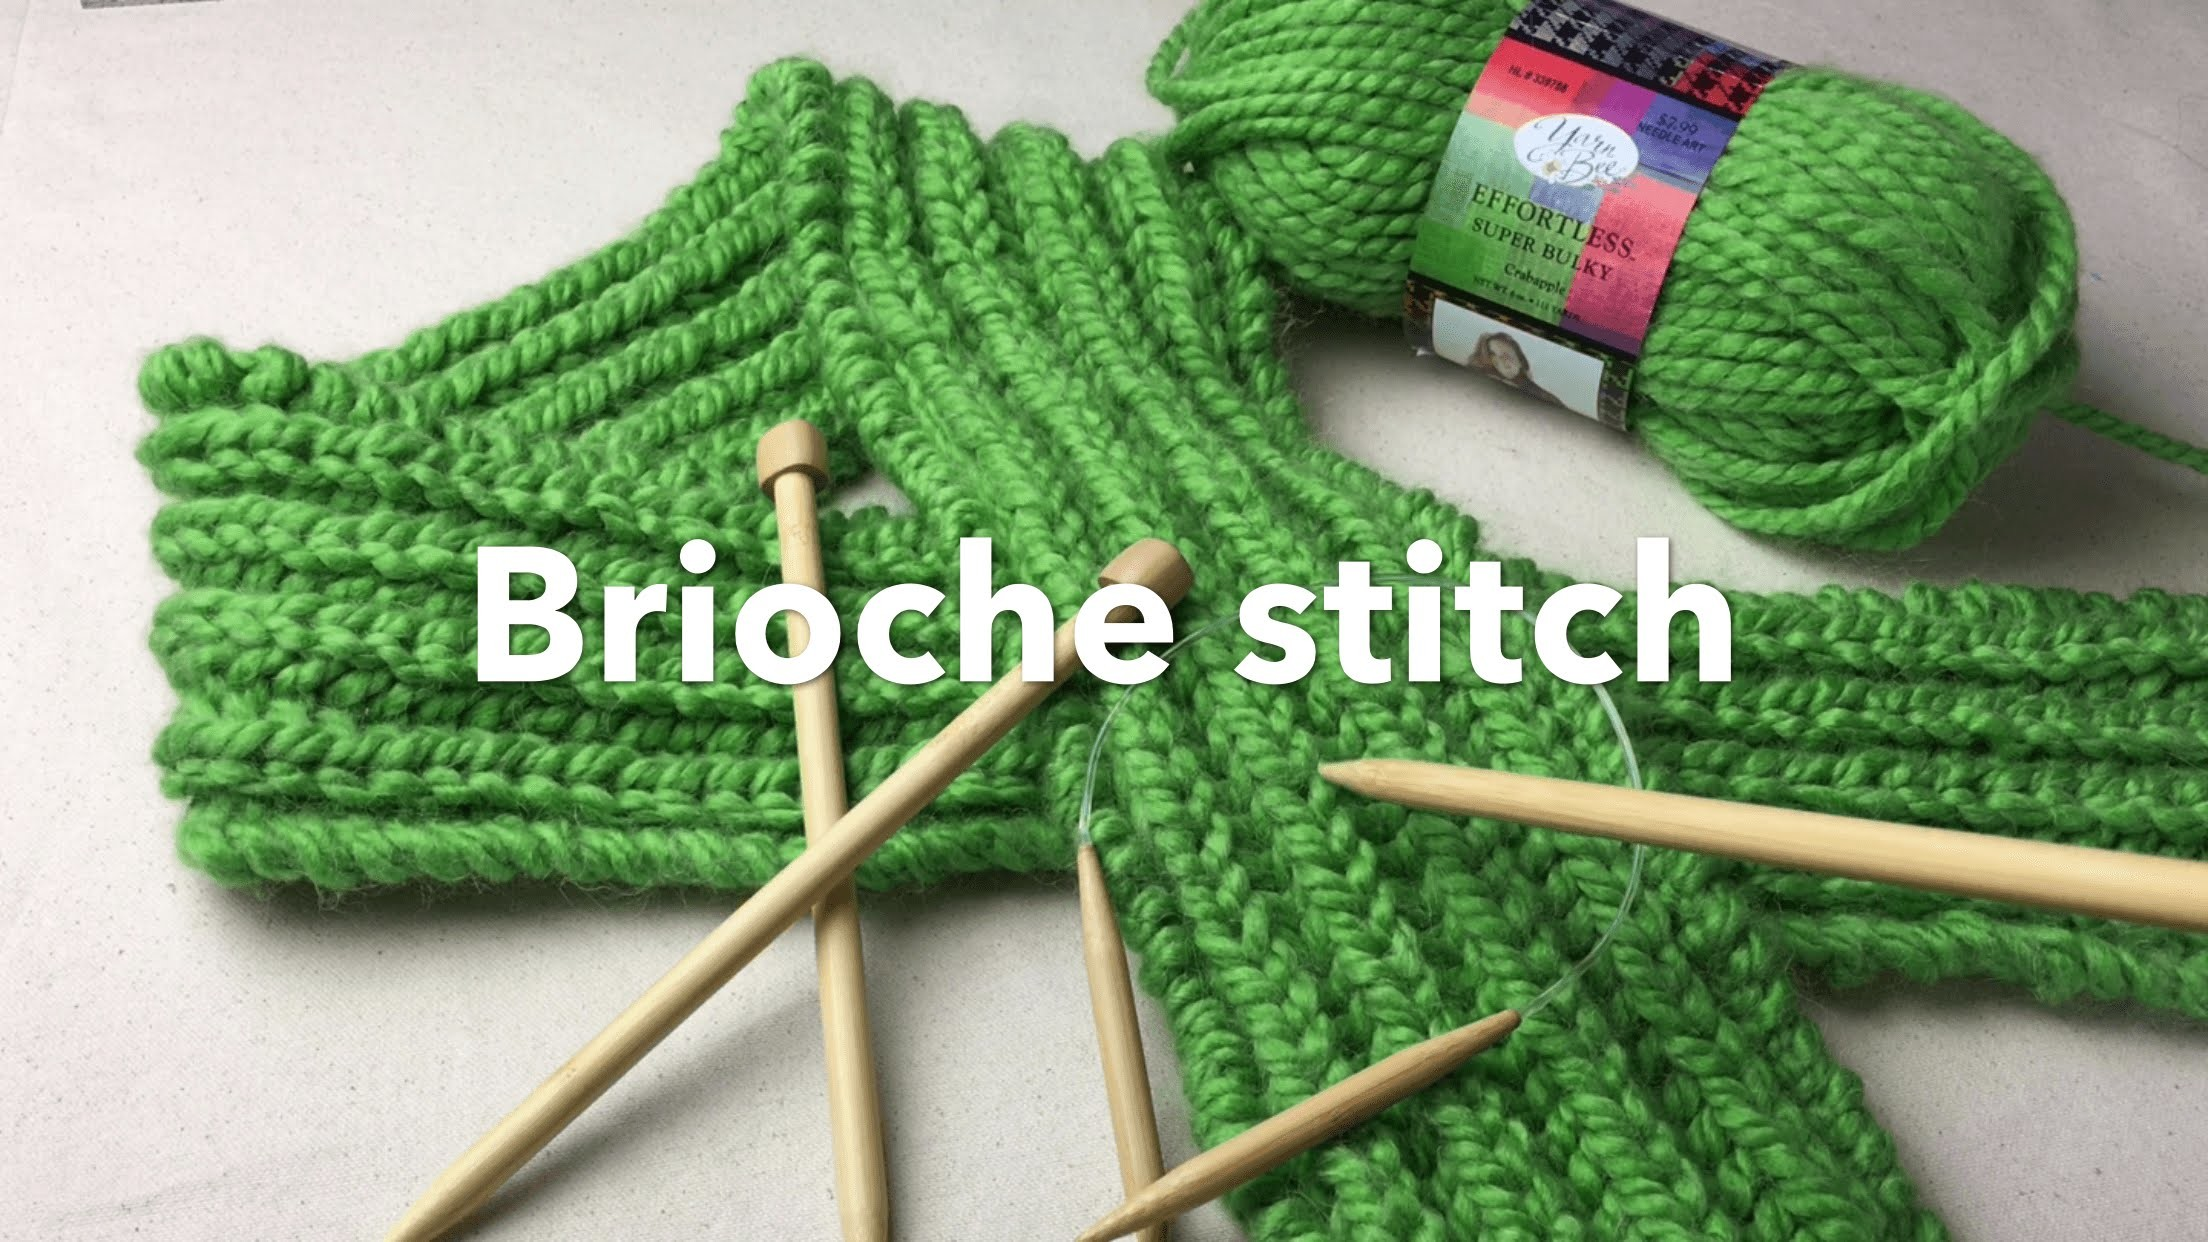 How to Knit Brioche stitch | Bulky Brioche Scarf on Needles